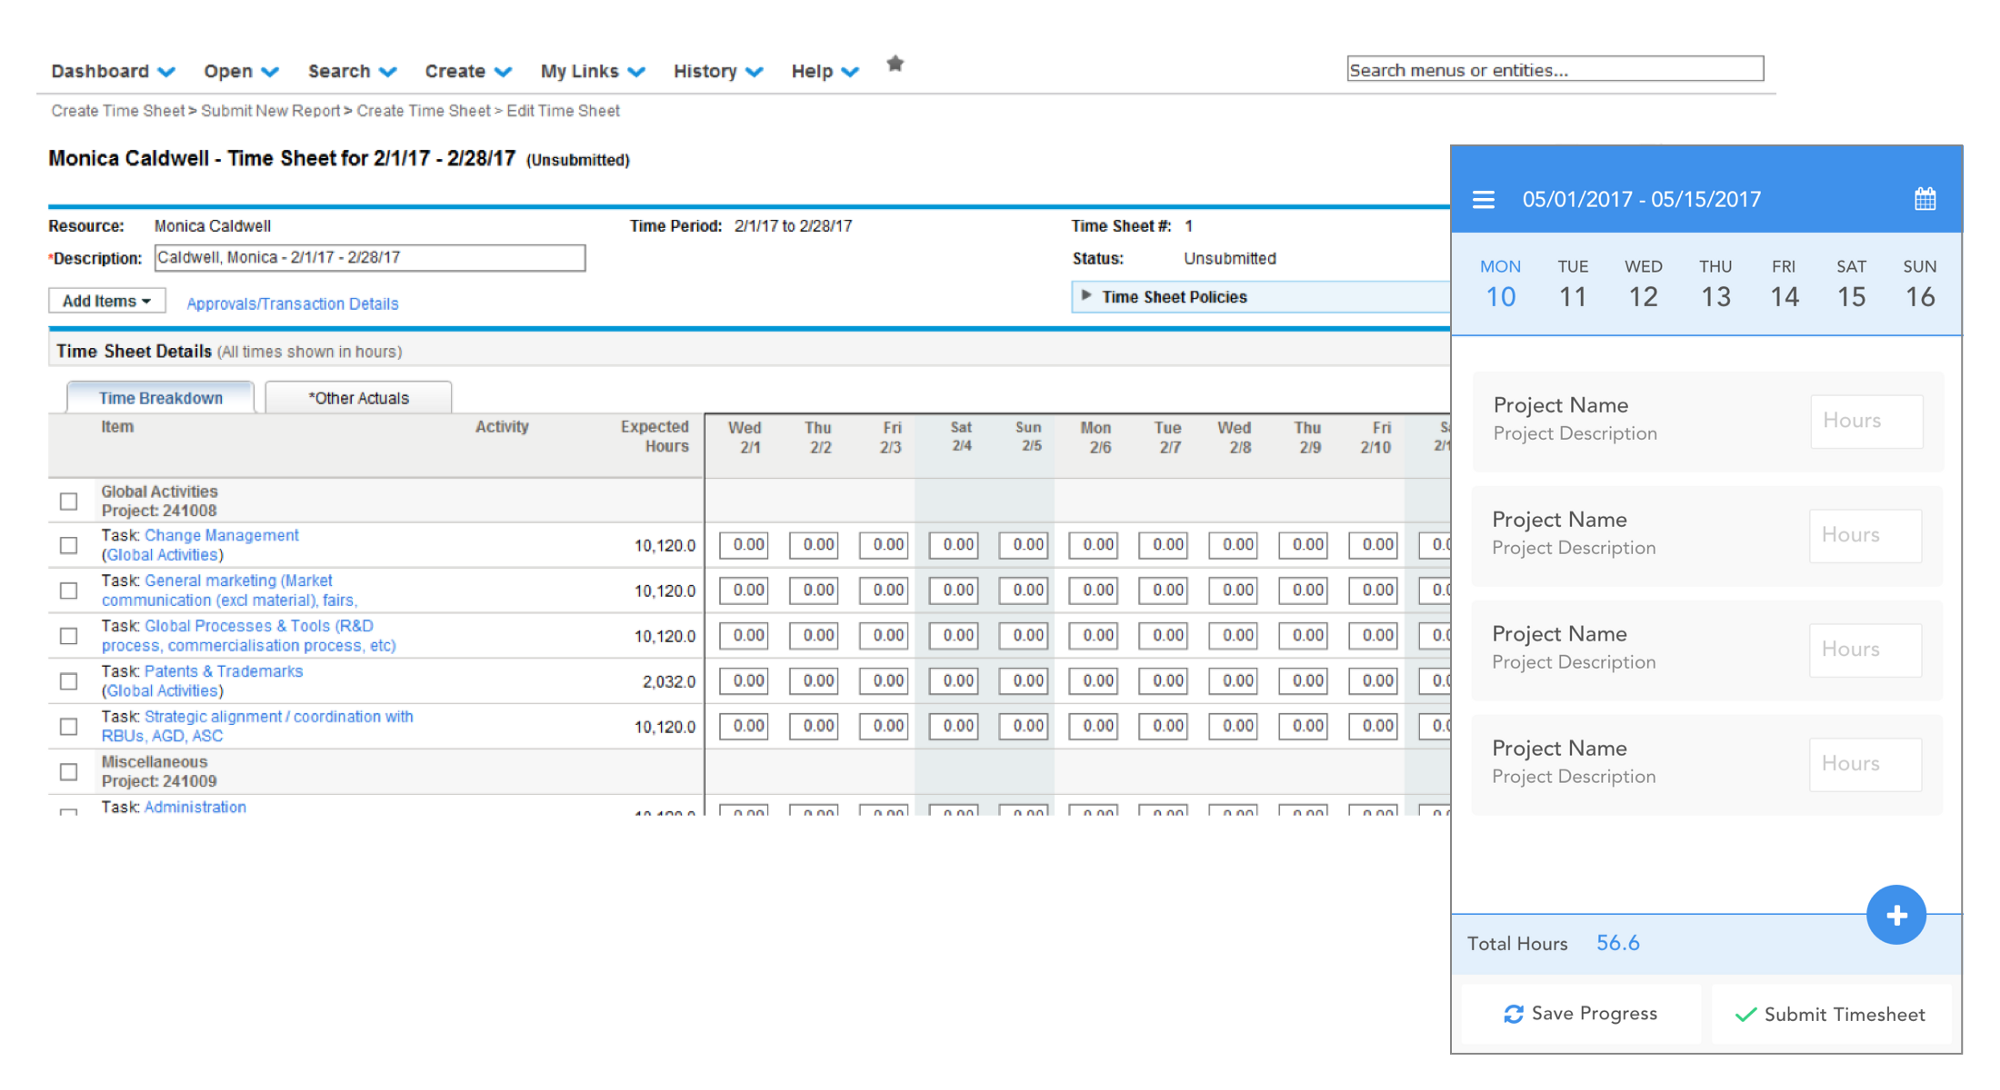 Designing a complex table for mobile consumption (nom)